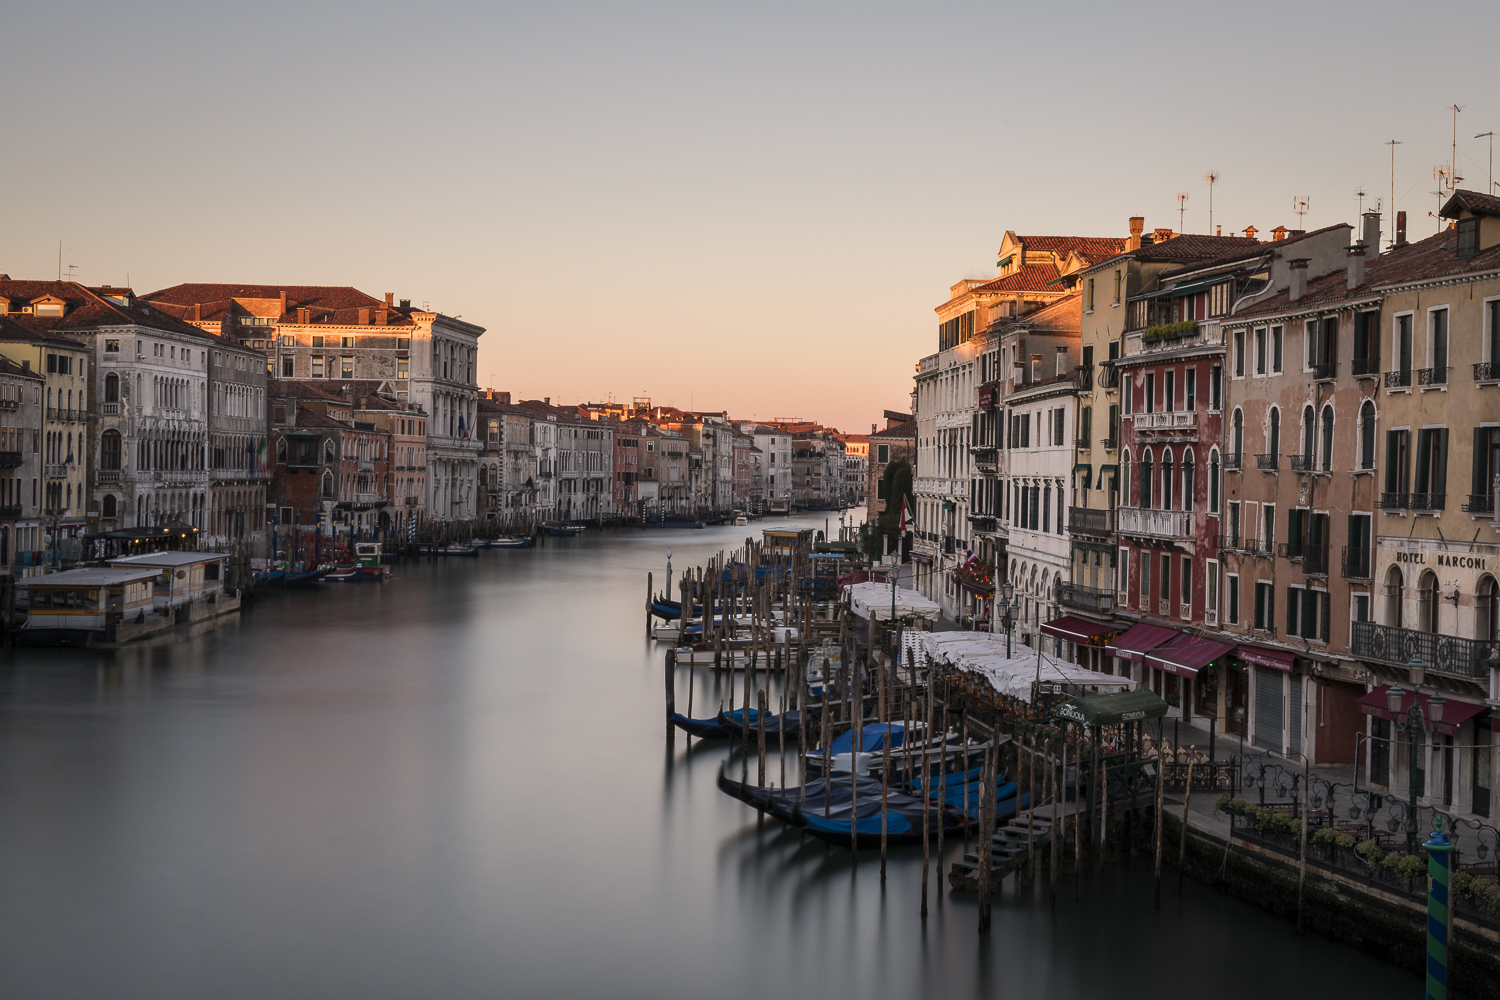 The Grand Canal from the Rialto Bridge. Venice.